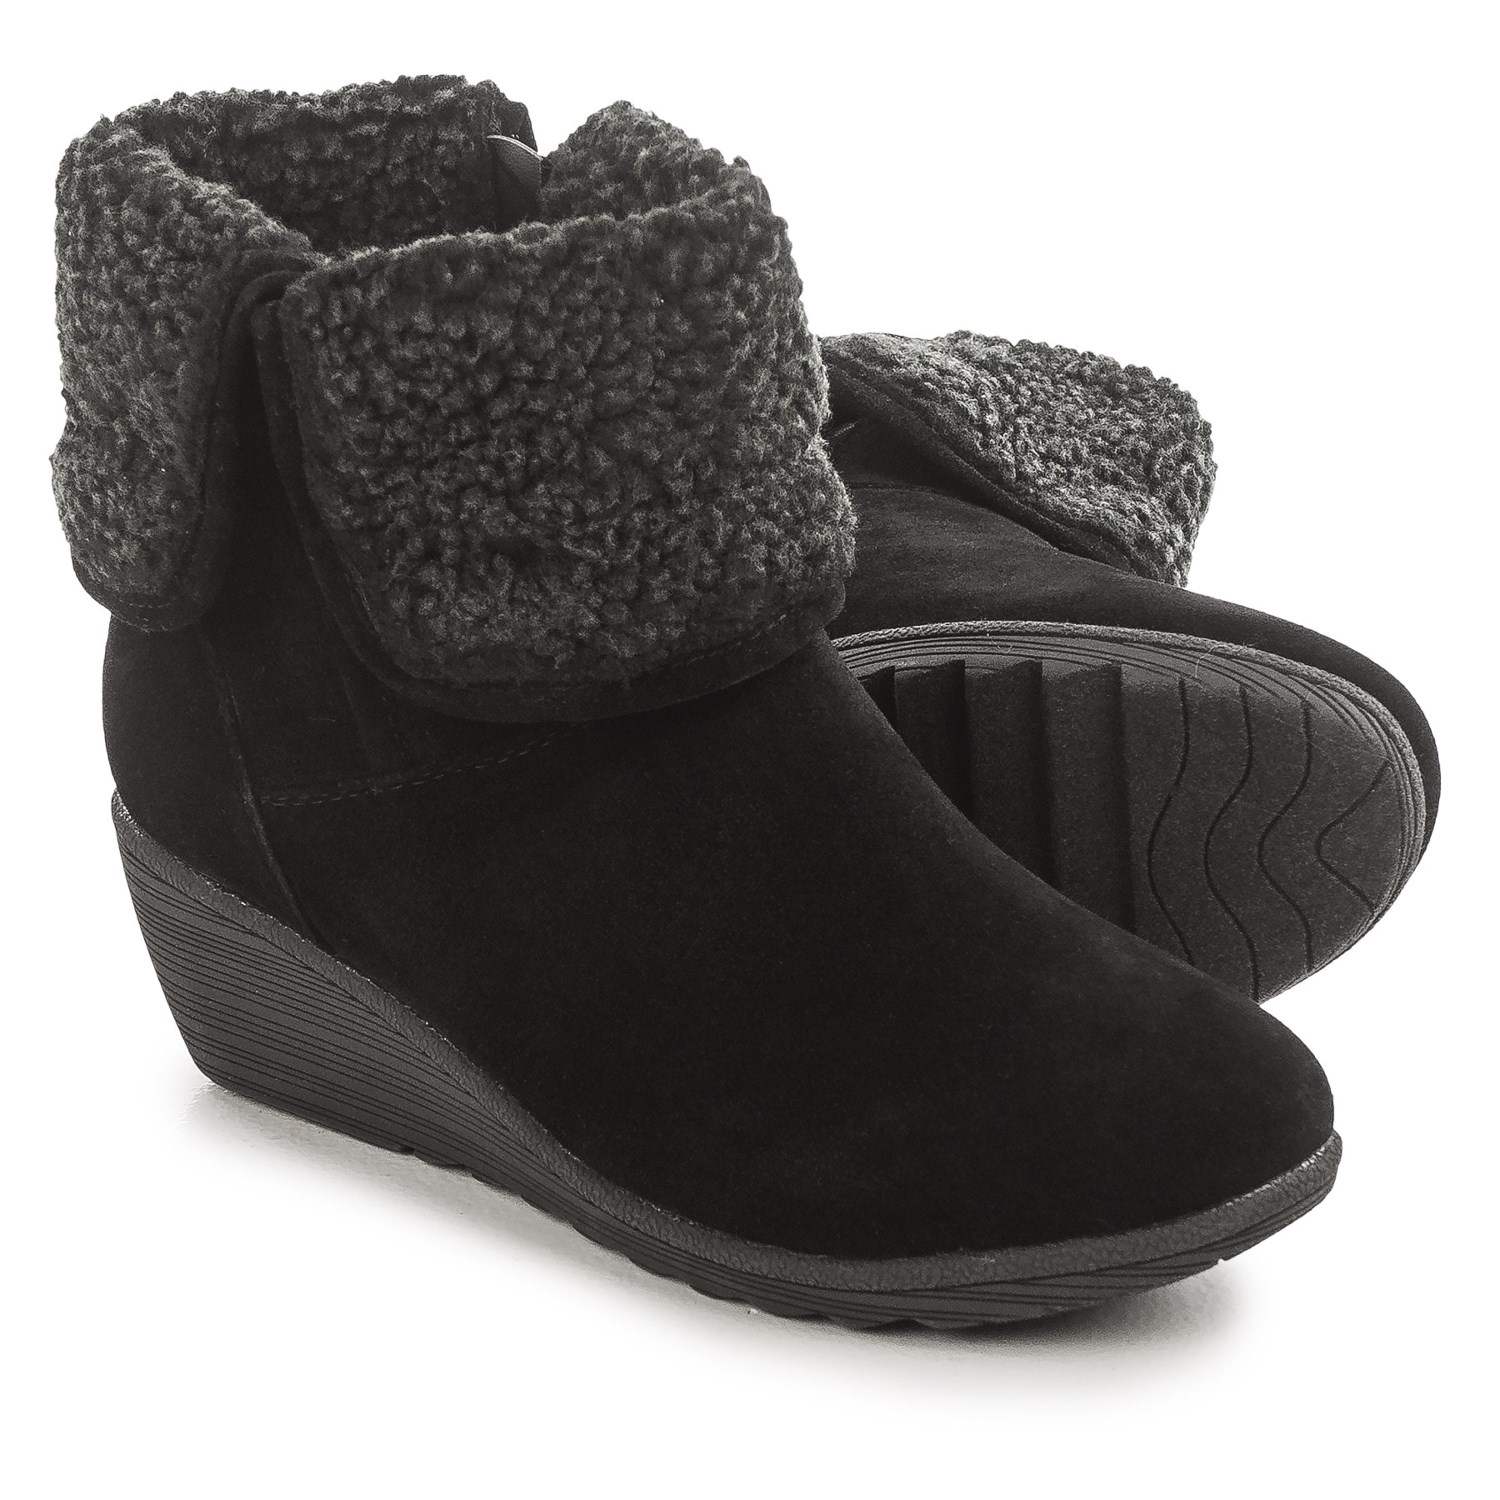 Serene Luuk Wedge Ankle Boots For Women 176kt Save 76